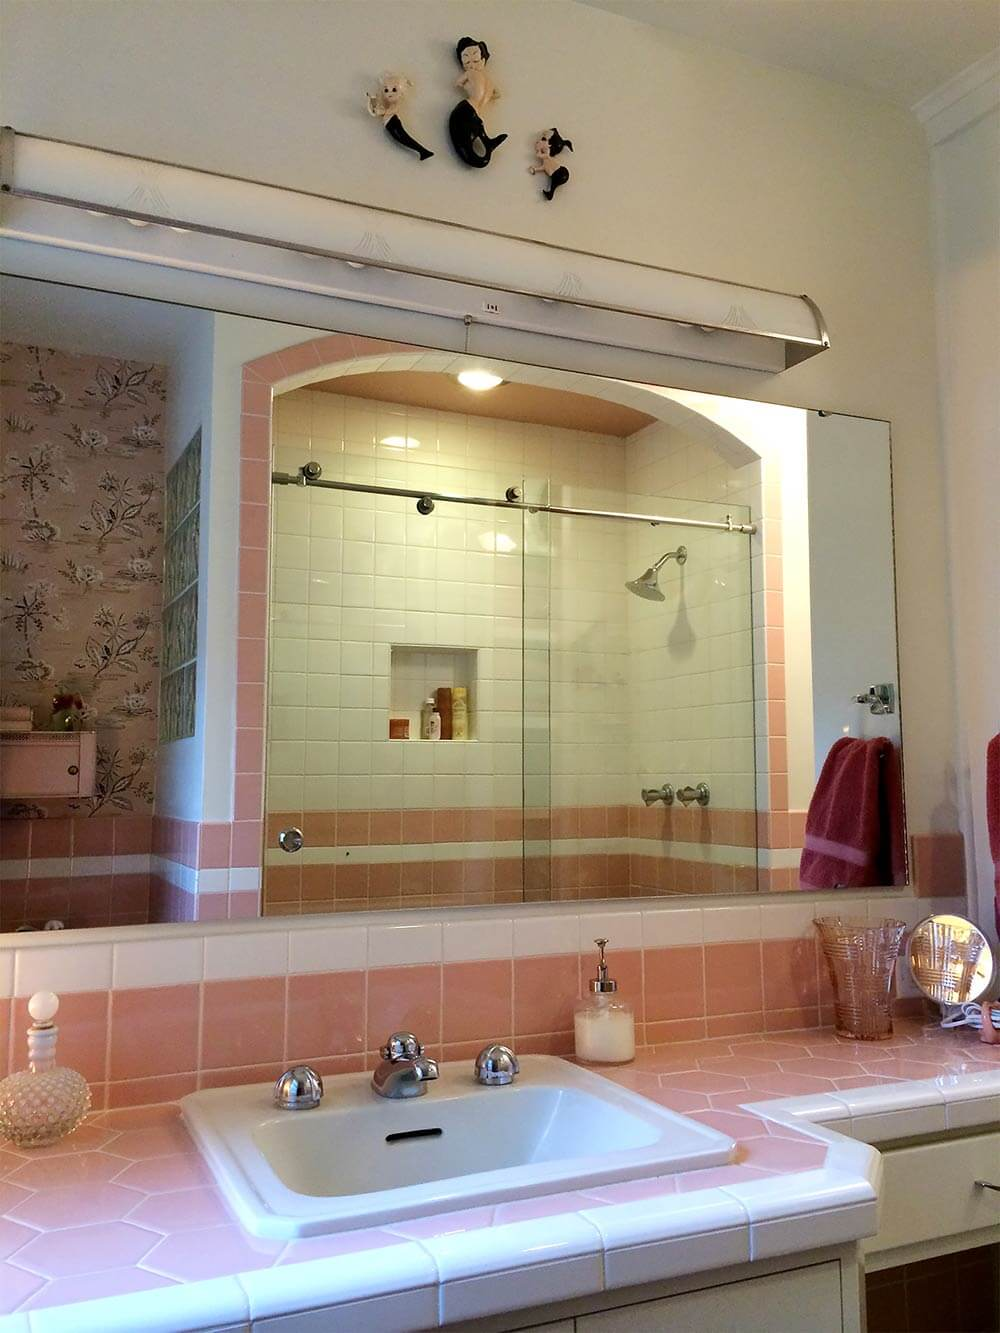 Nanette Jim 39 S Mamie Pink Bathroom Built From Scratch